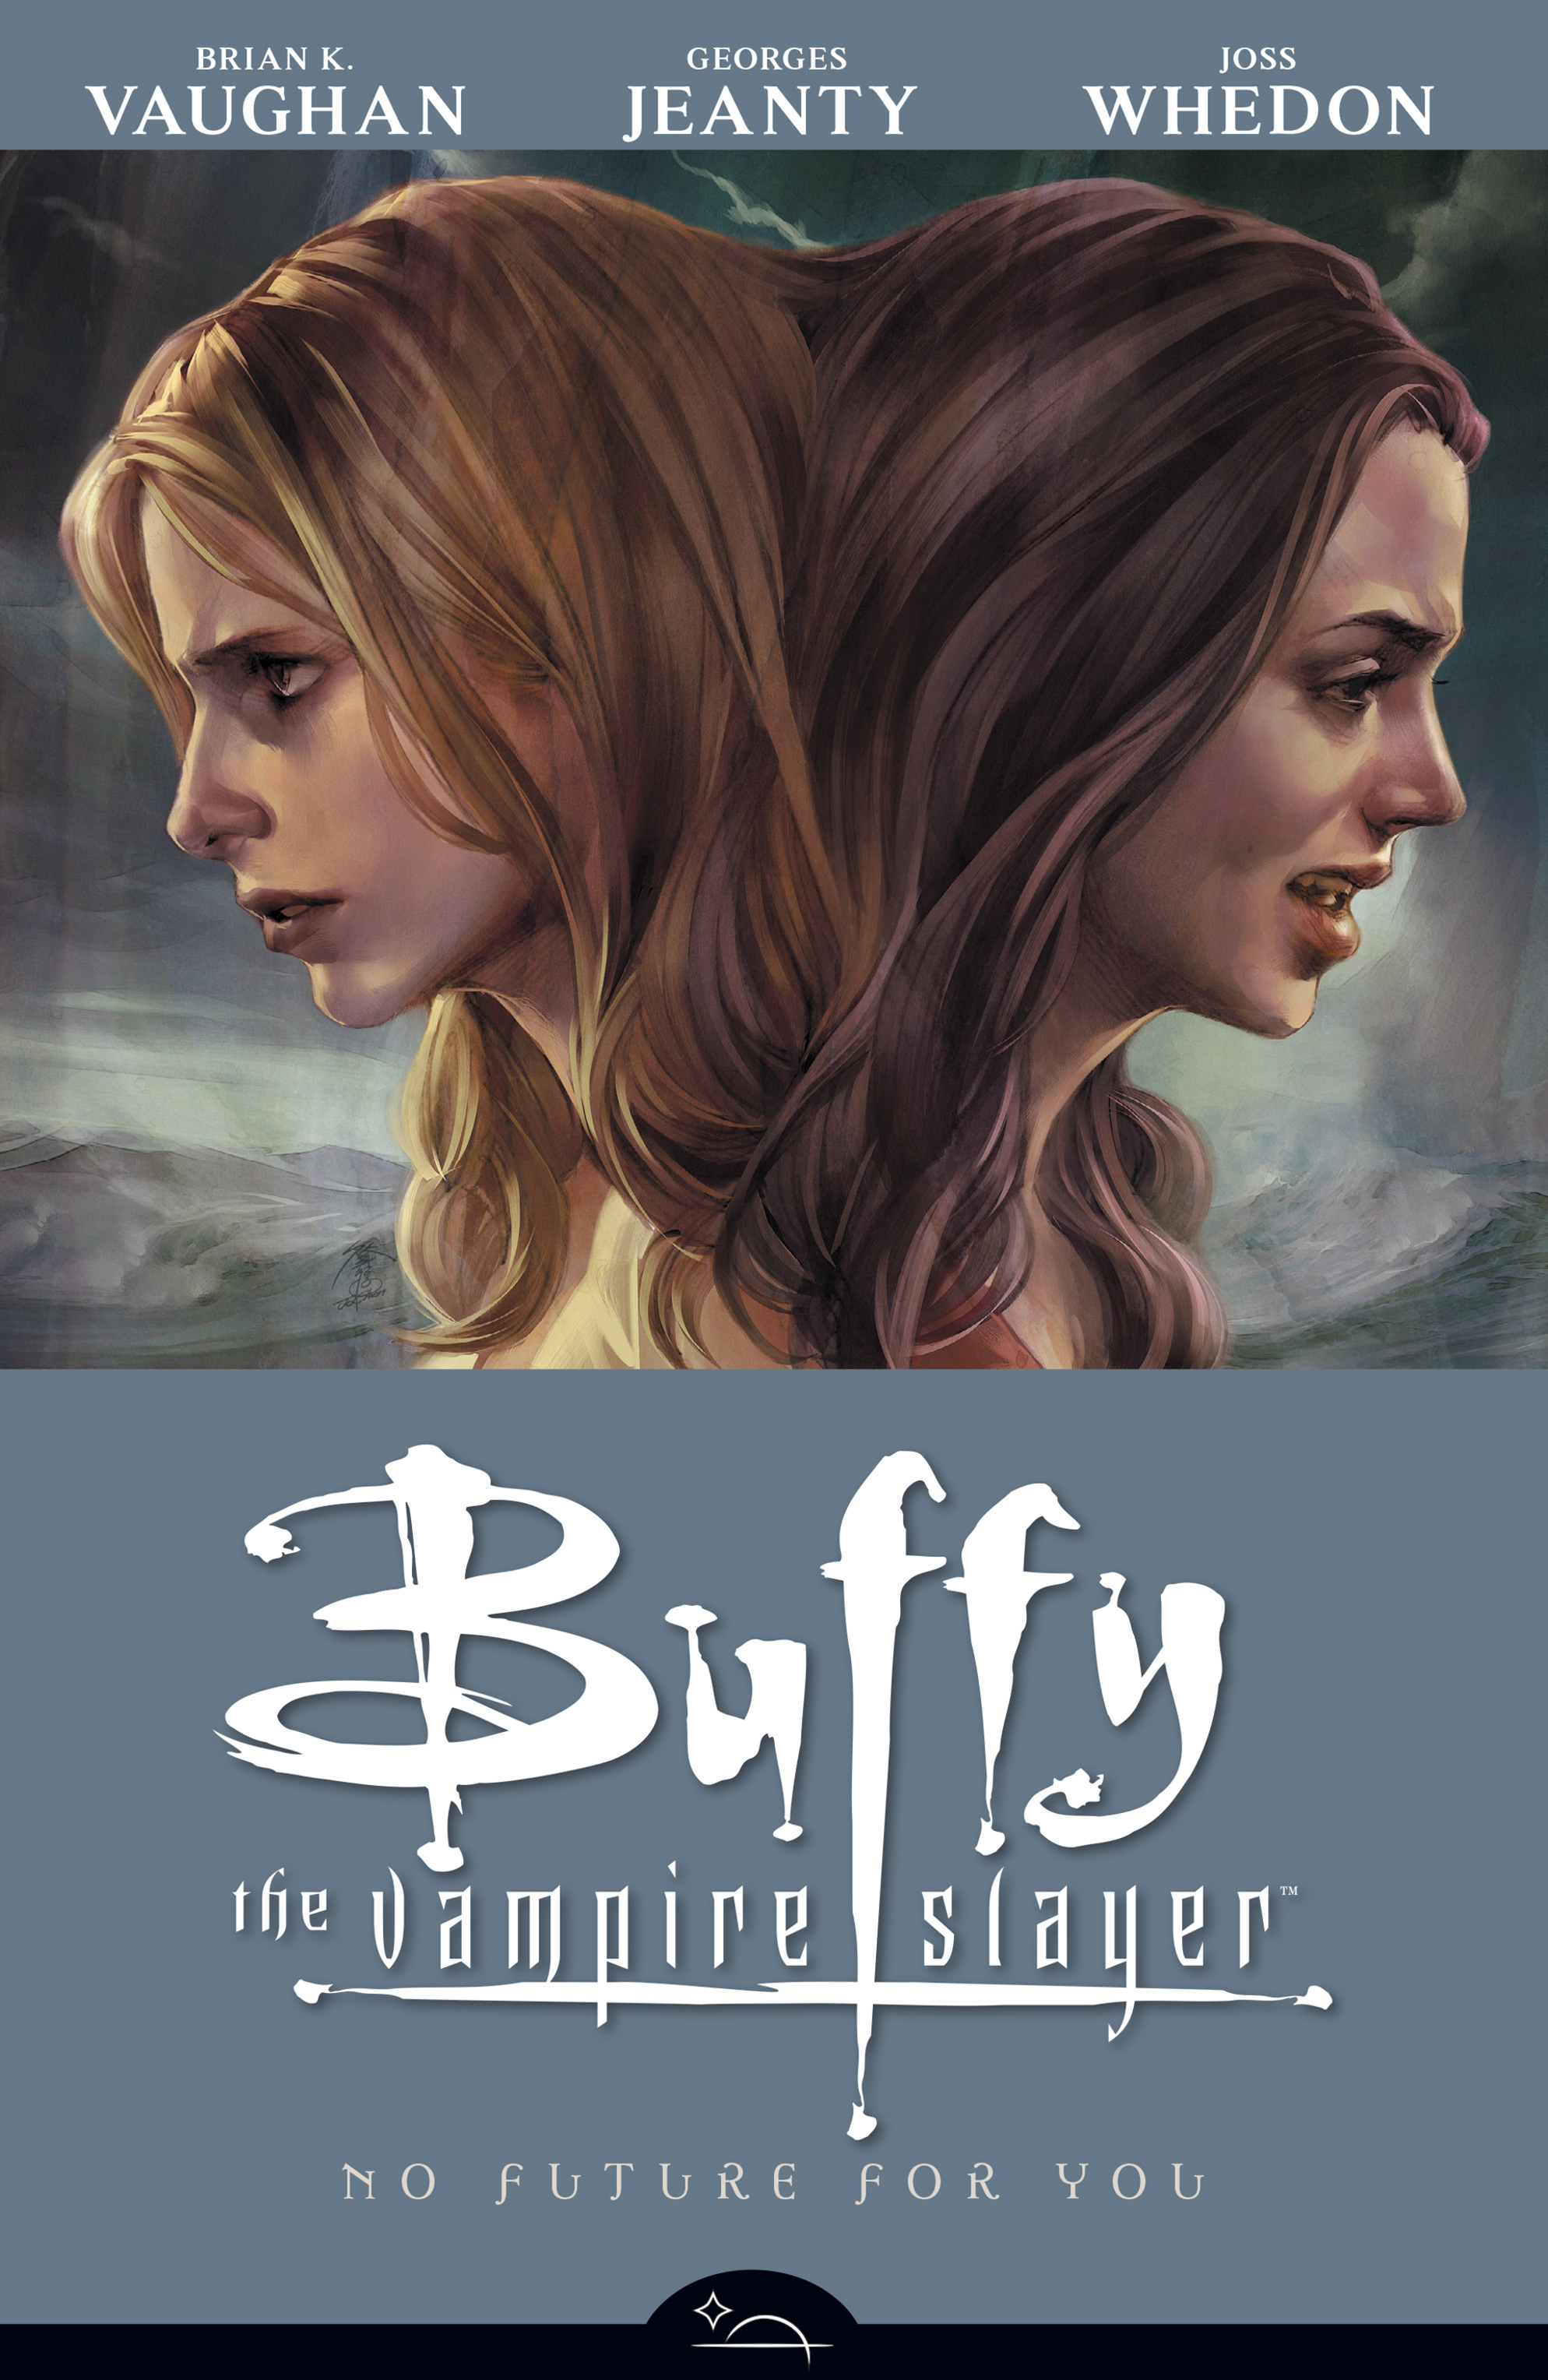 Buffy the Vampire Slayer Season Eight _TPB_2_-_No_Future_For_You Page 1